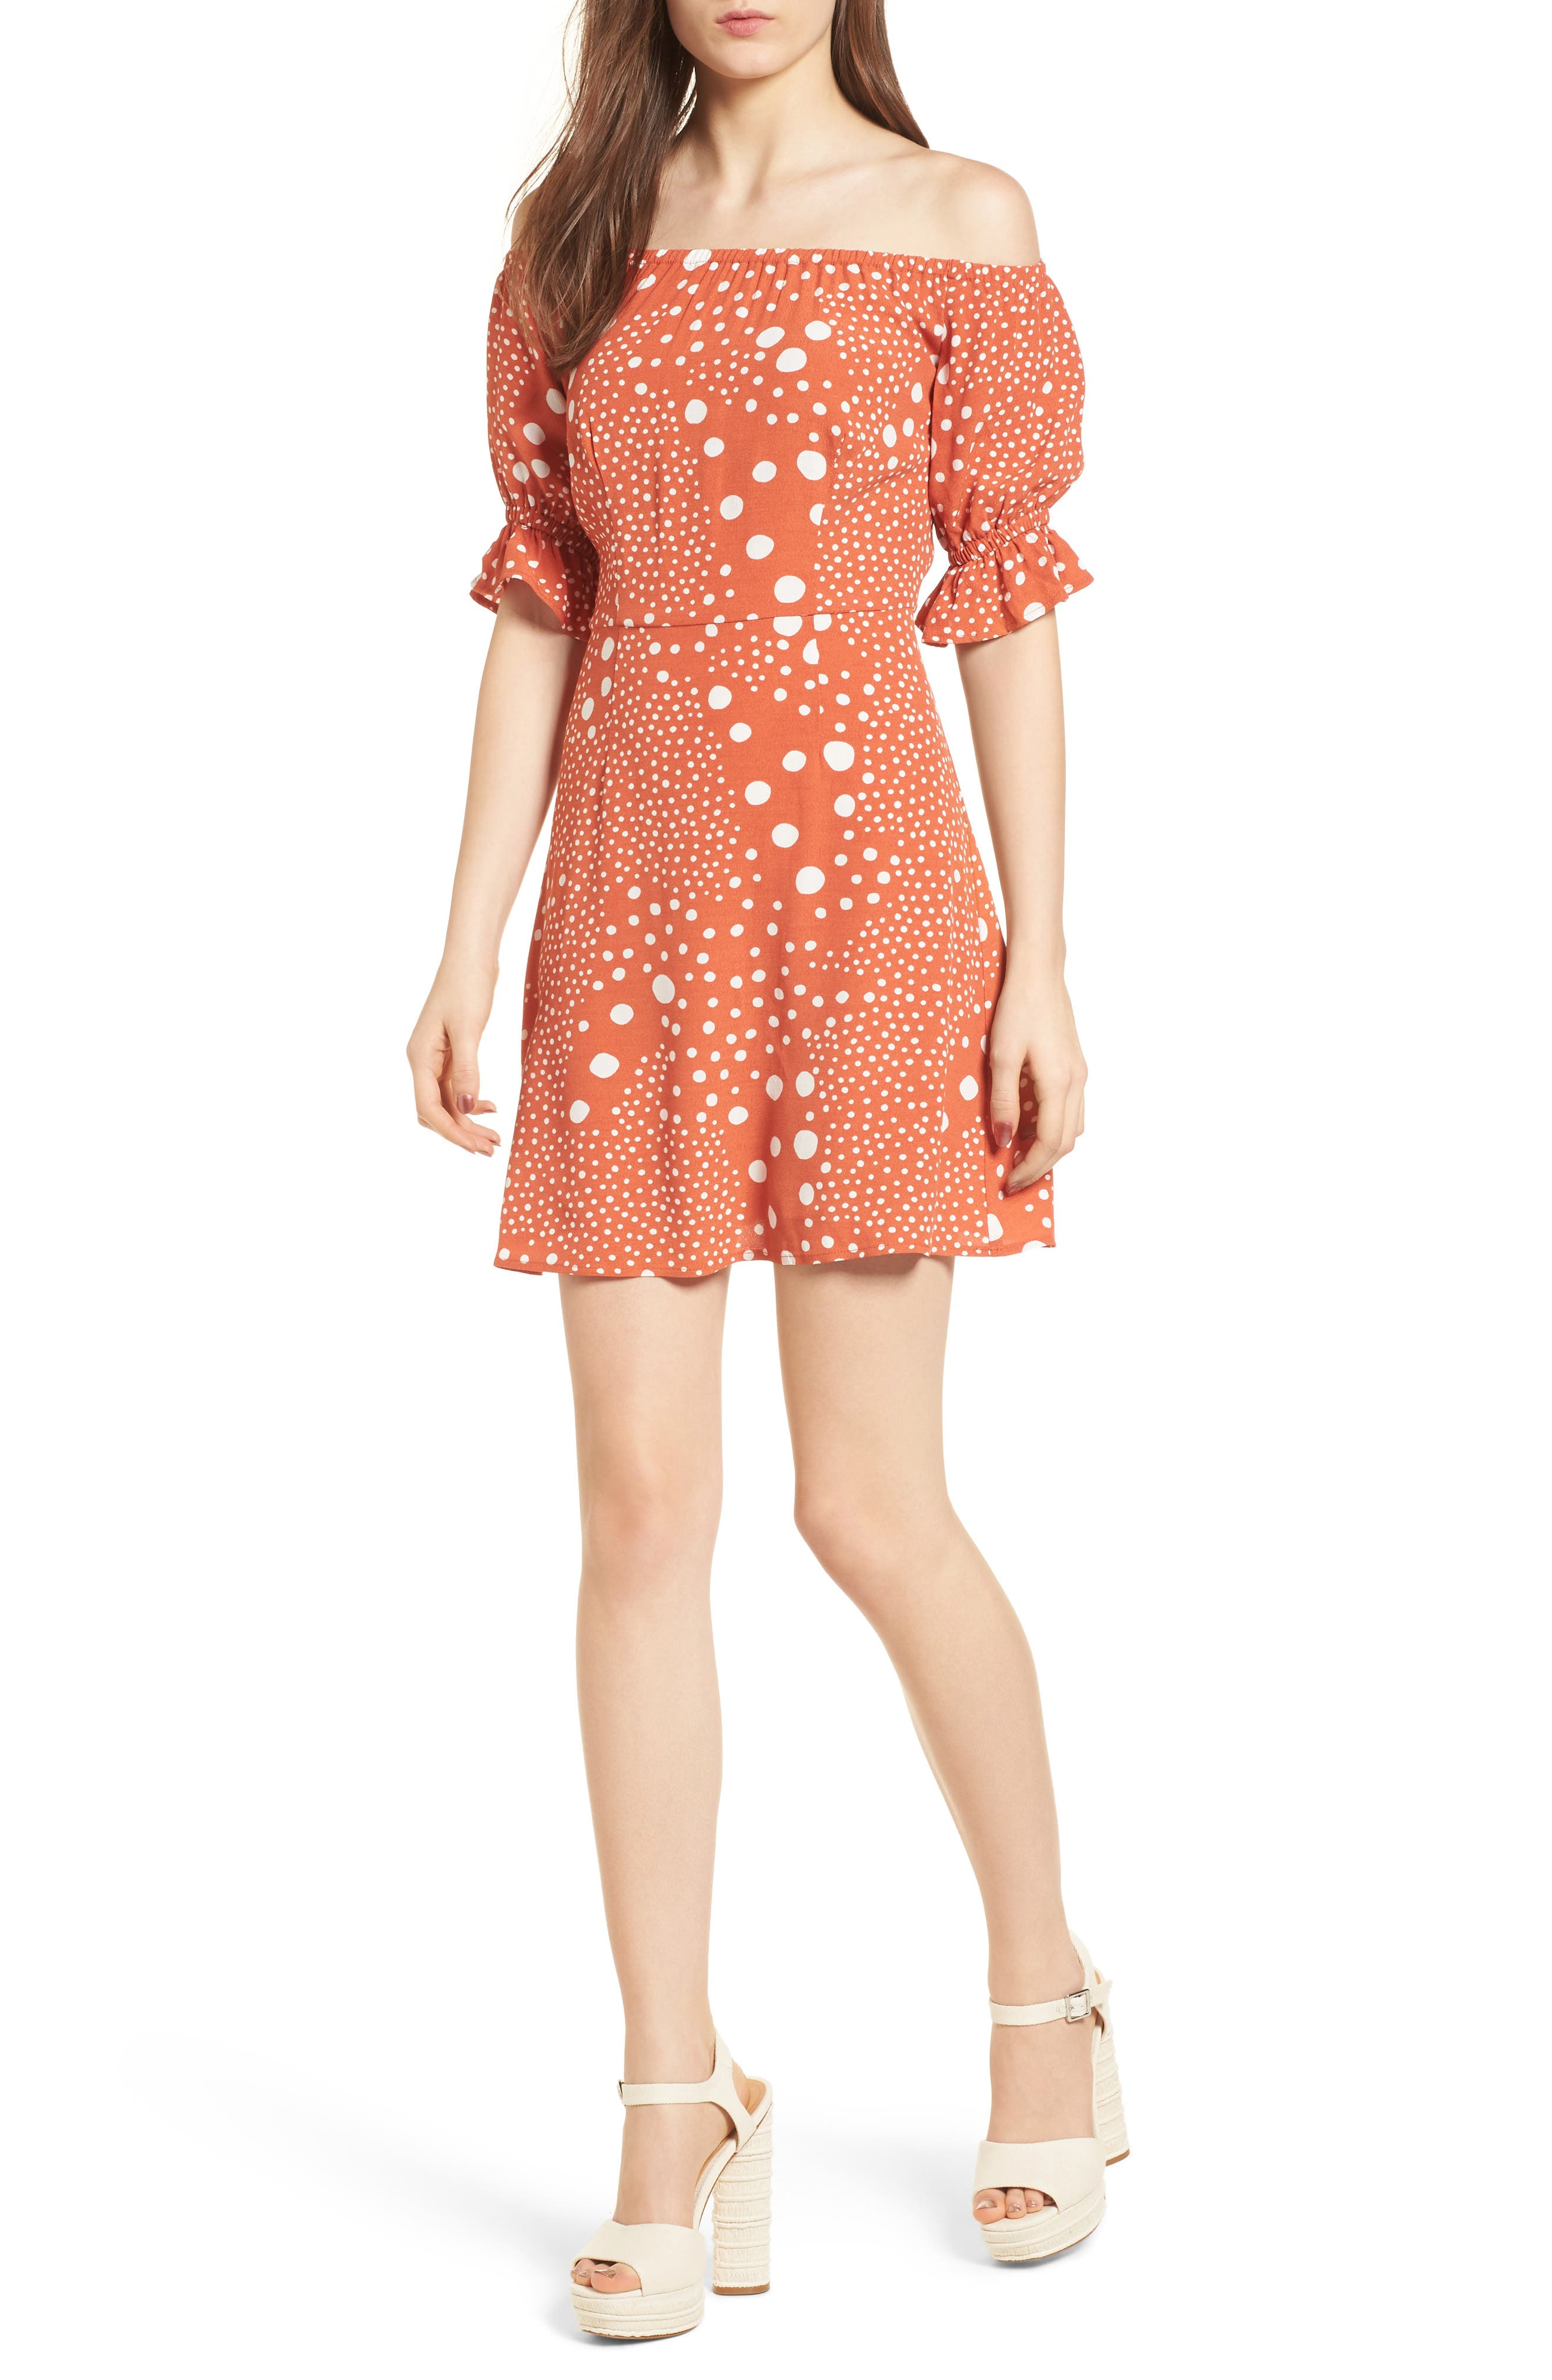 Peppers Polka Dot Off the Shoulder Dress,                         Main,                         color, RUST PEBBLE